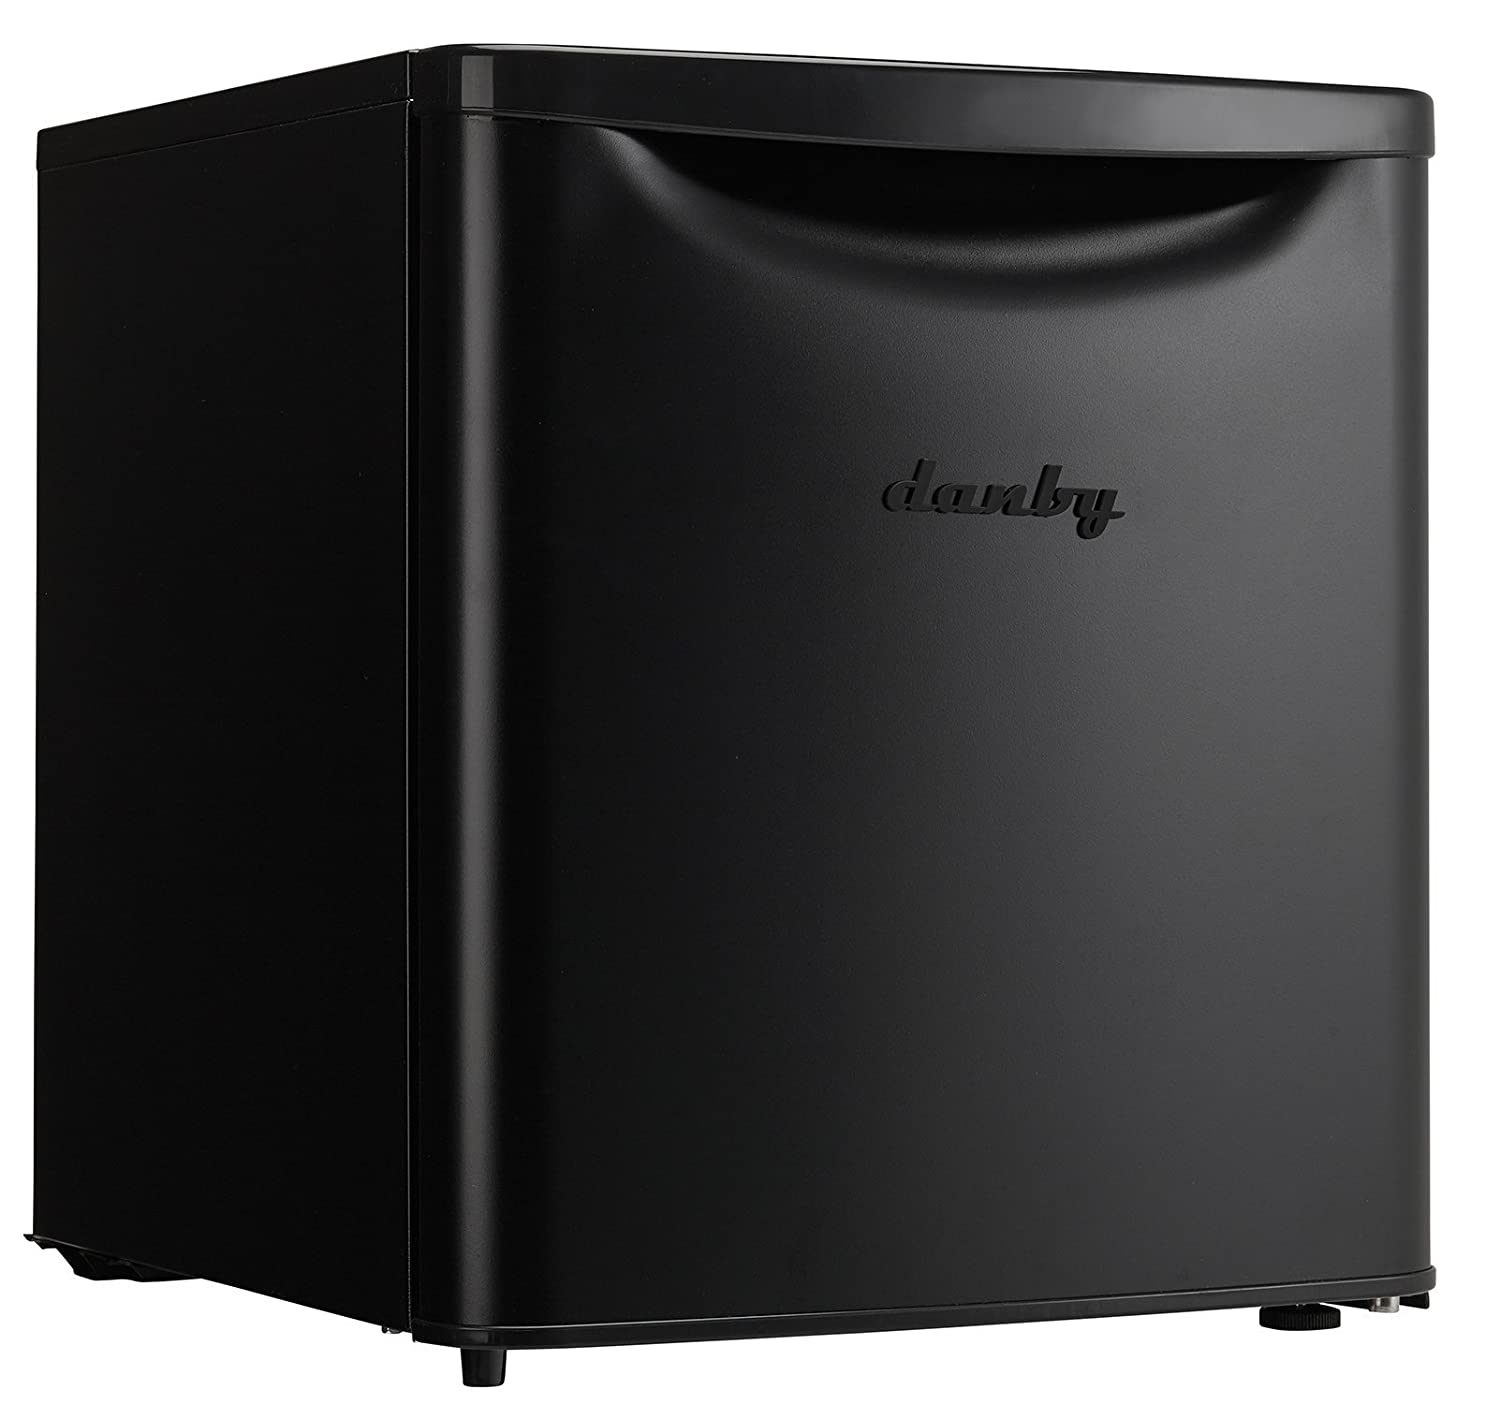 Danby DAR017A3BDB Contemporary Classic Compact All Refrigerator, Black